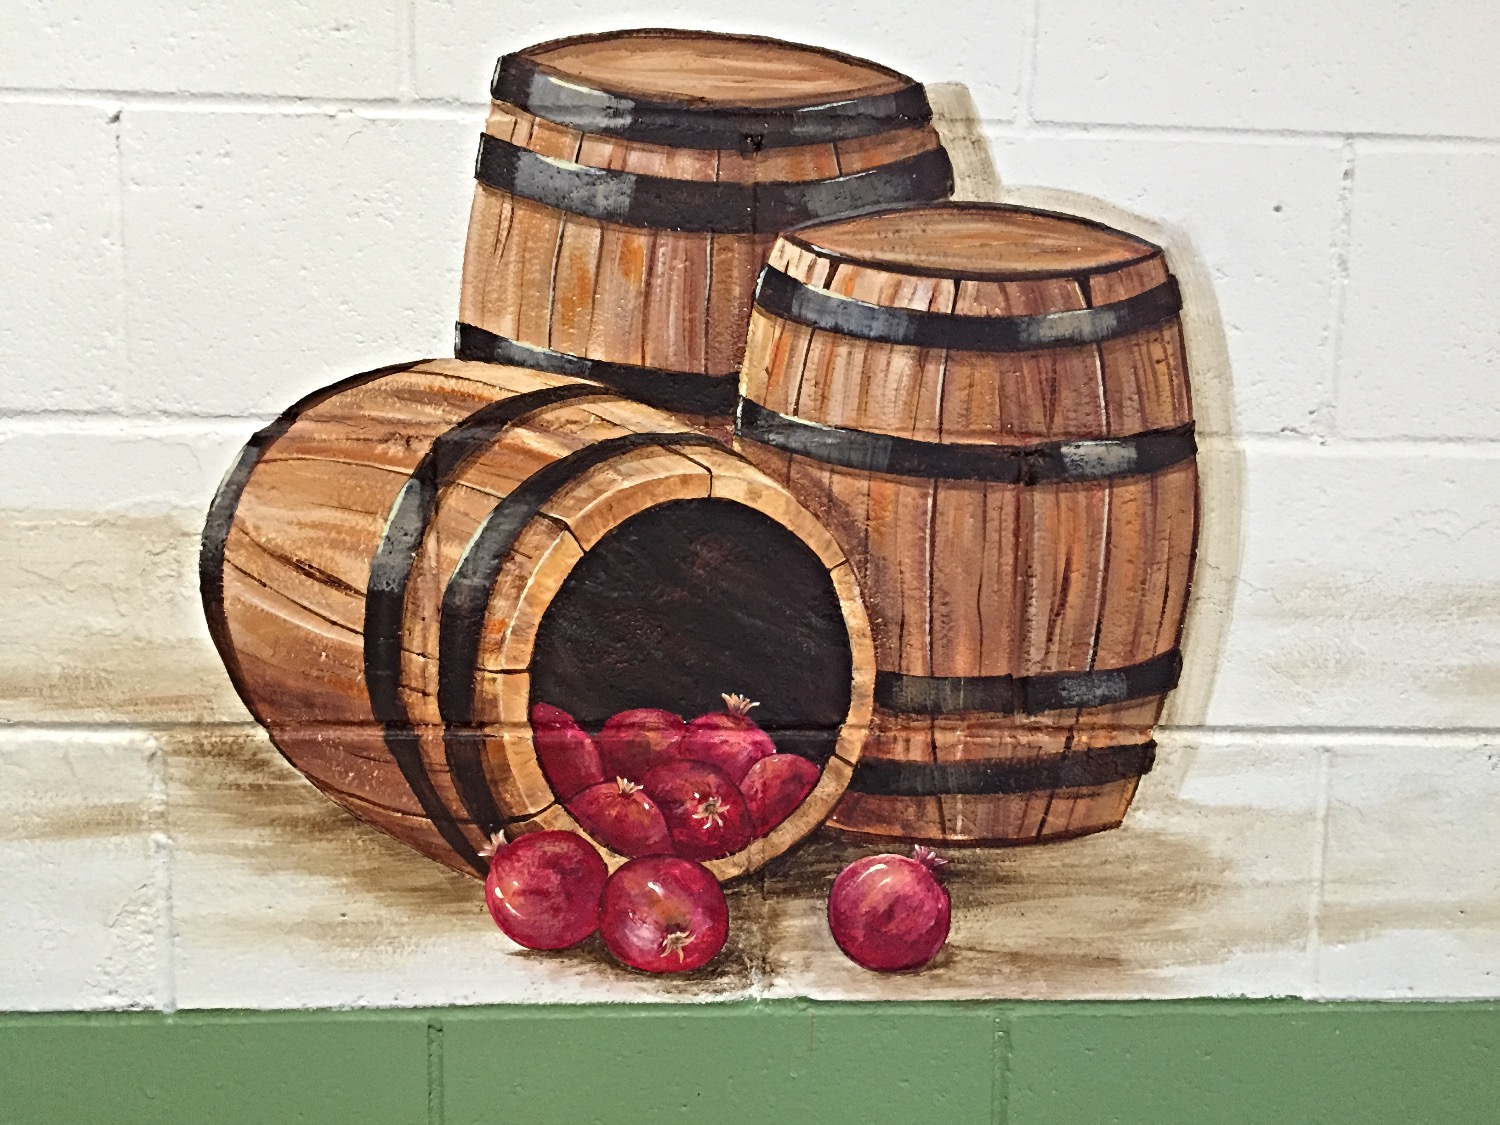 Closeup of barrel and pomegranates